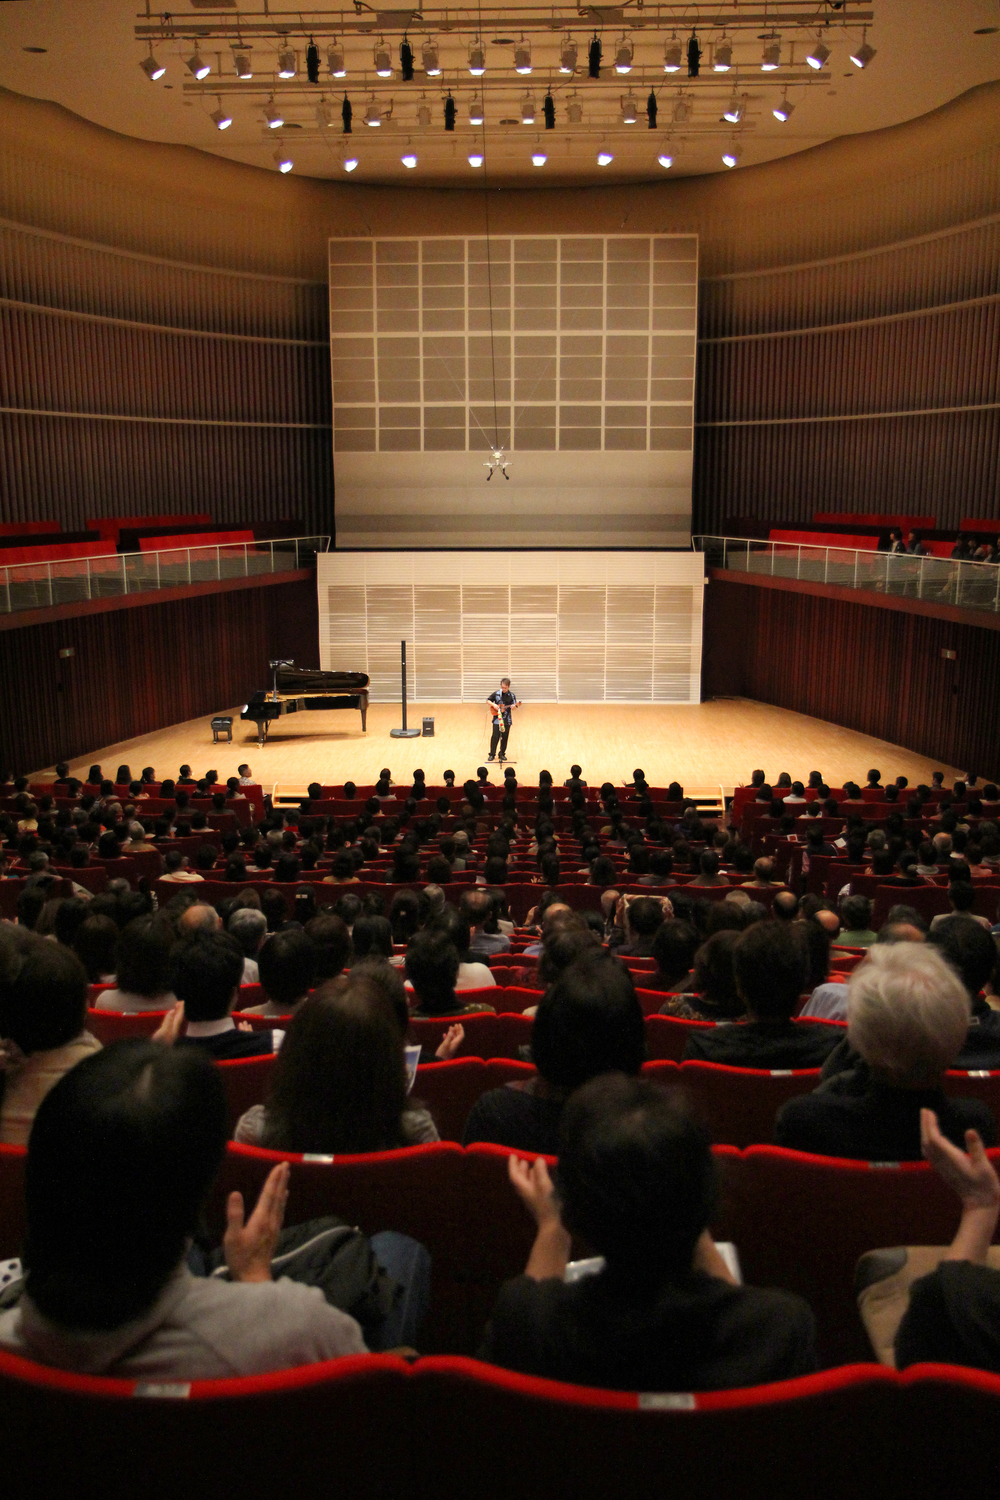 Lyric Concert Hall, Nagaoka, Japan